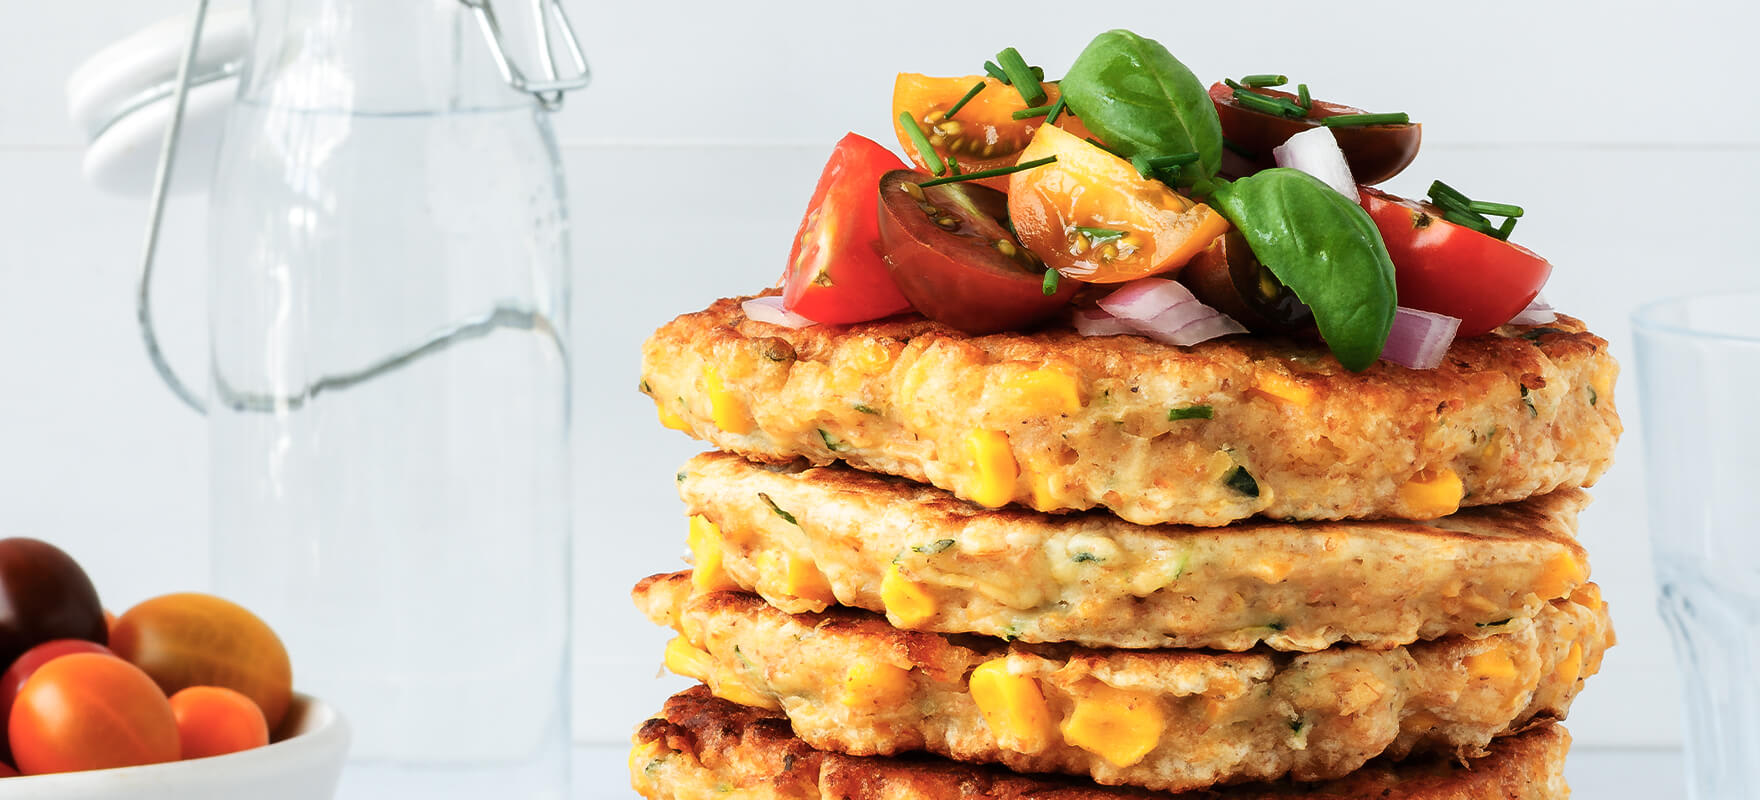 Corn, zucchini and chickpea fritters image 1